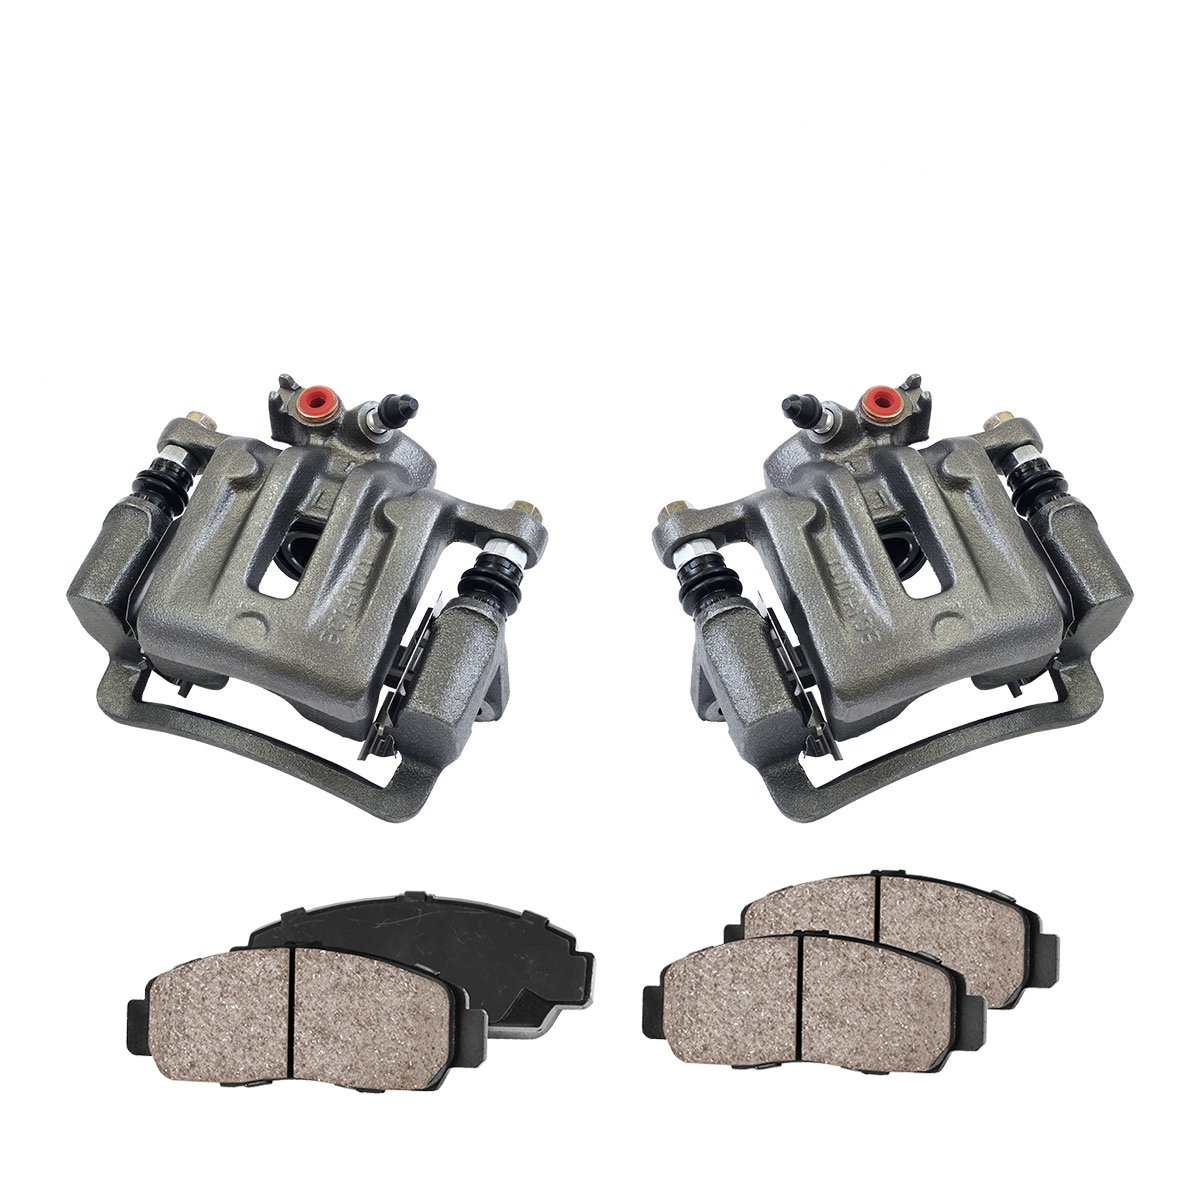 CCK03264 REAR [2] Premium Loaded OE Caliper Assembly Set + [4] Quiet Low Dust Ceramic Brake Pads Kit Callahan Brake Parts